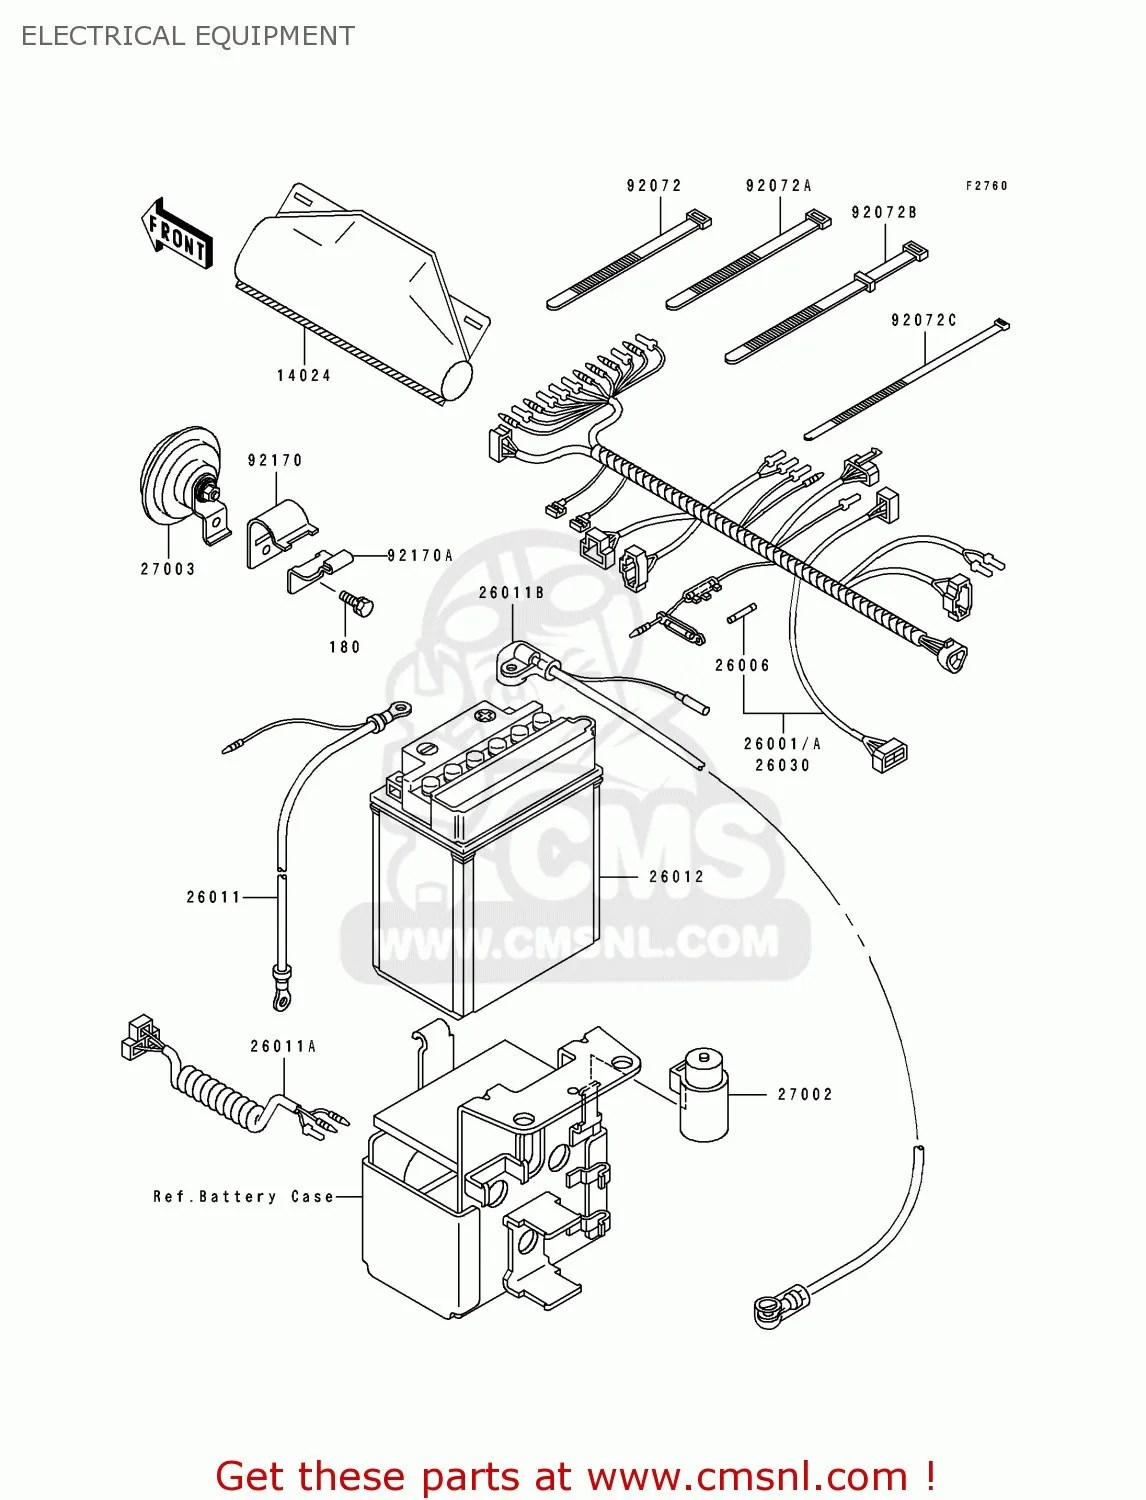 hight resolution of kawasaki fuse box wiring diagram writekawasaki bayou 220 fuse box wiring diagram write kawasaki vulcan 750